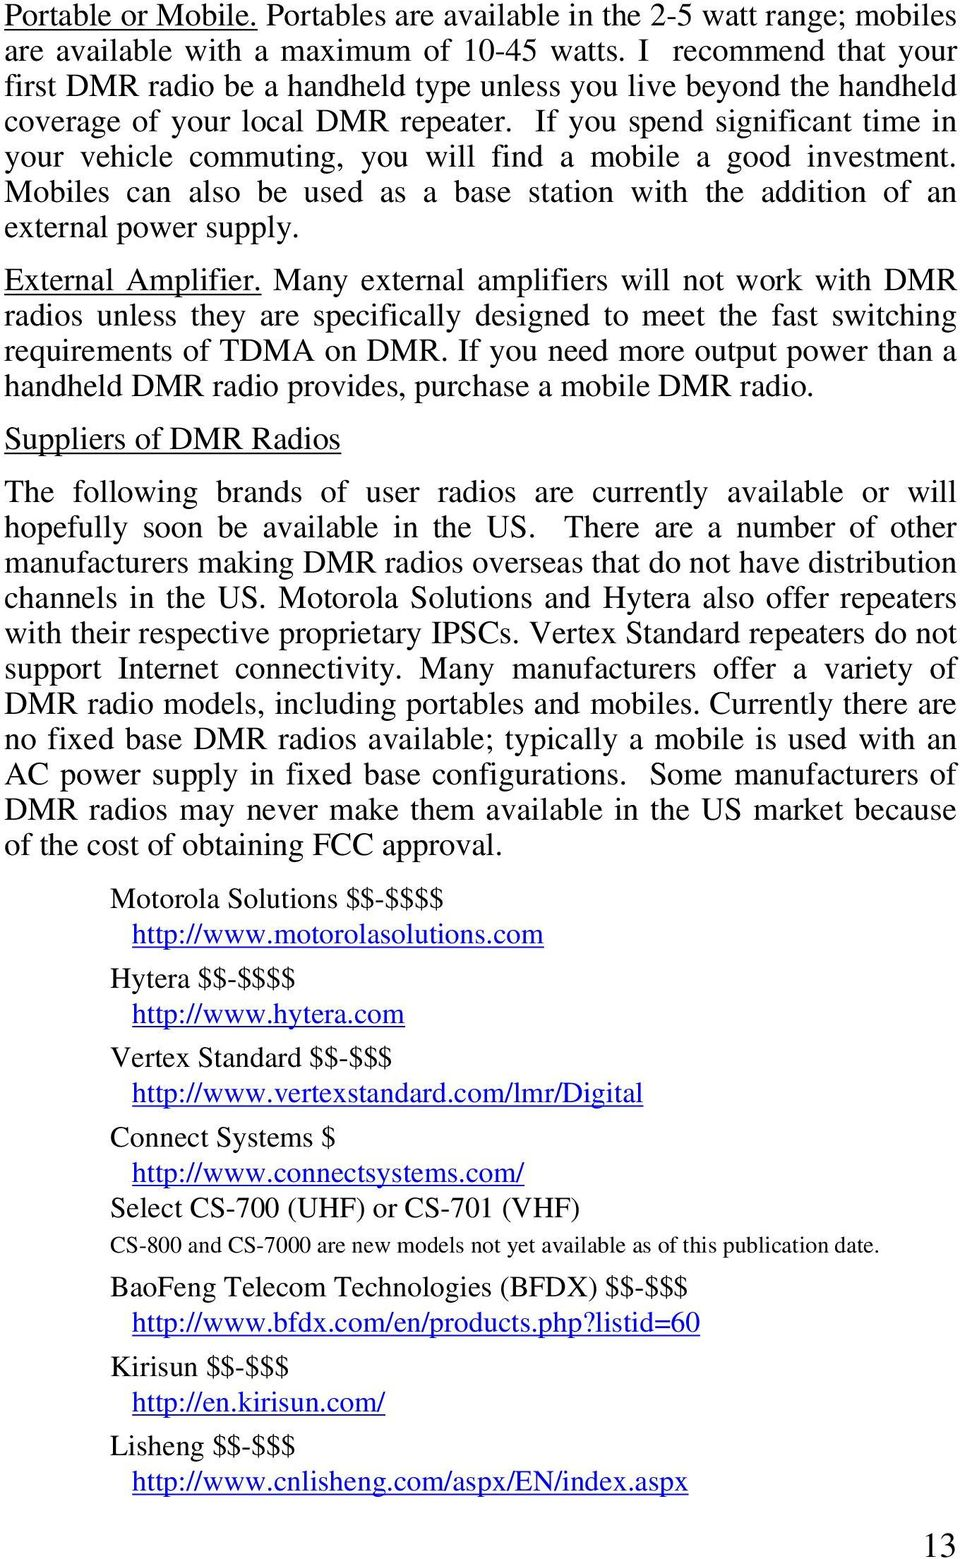 Amateur Radio Guide to Digital Mobile Radio (DMR) $ PDF